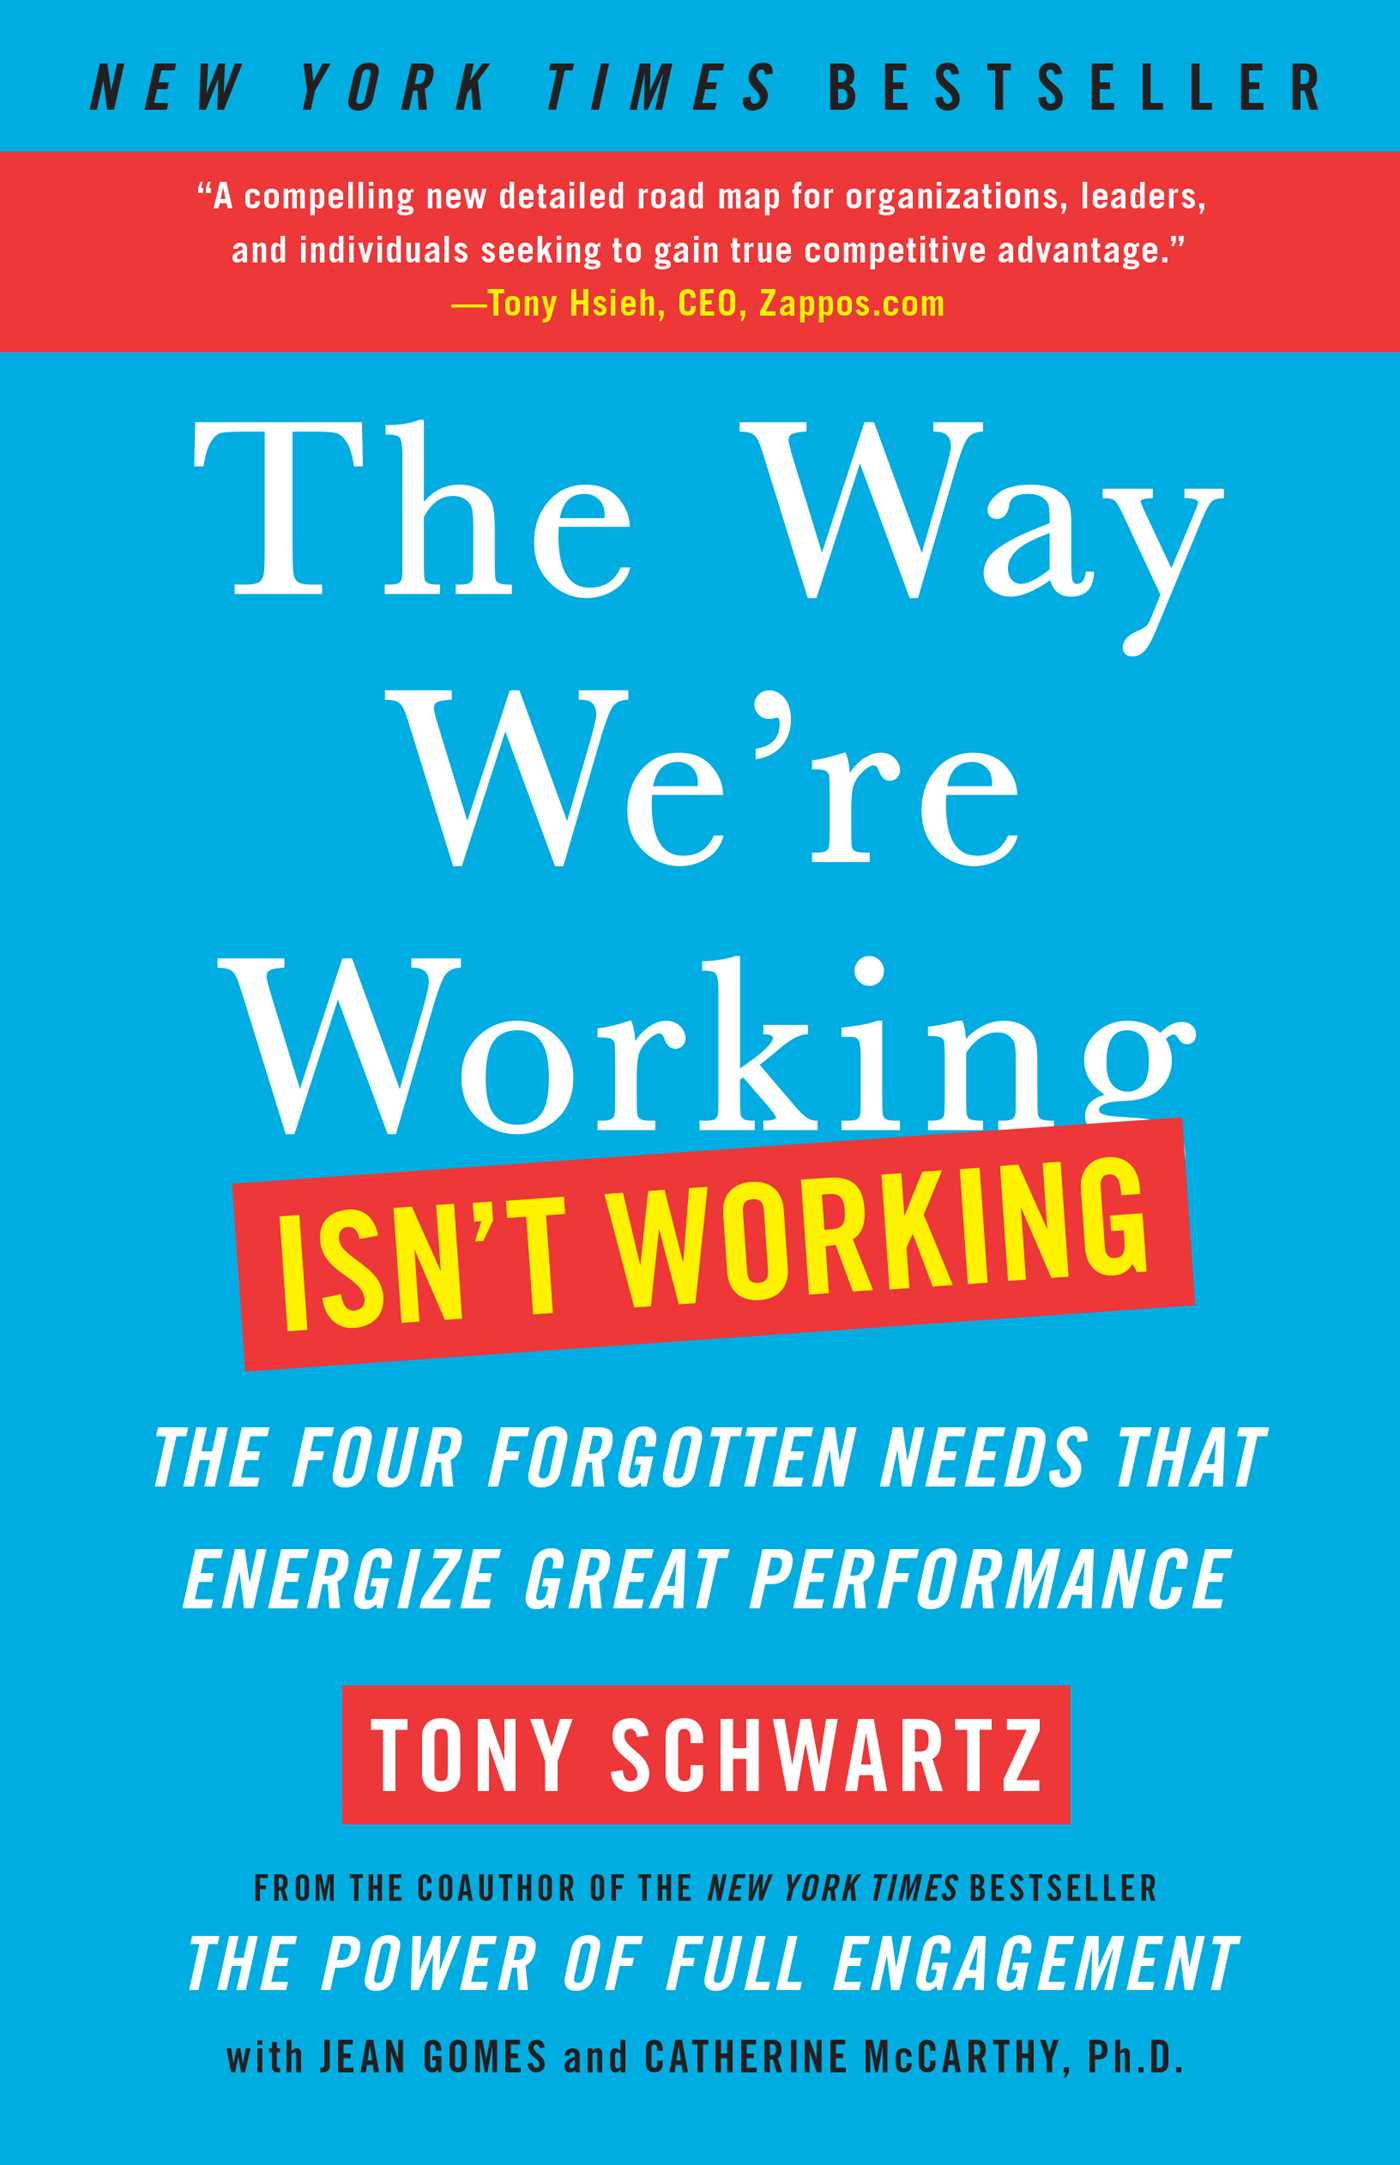 The-way-were-working-isnt-working-9781451639452_hr